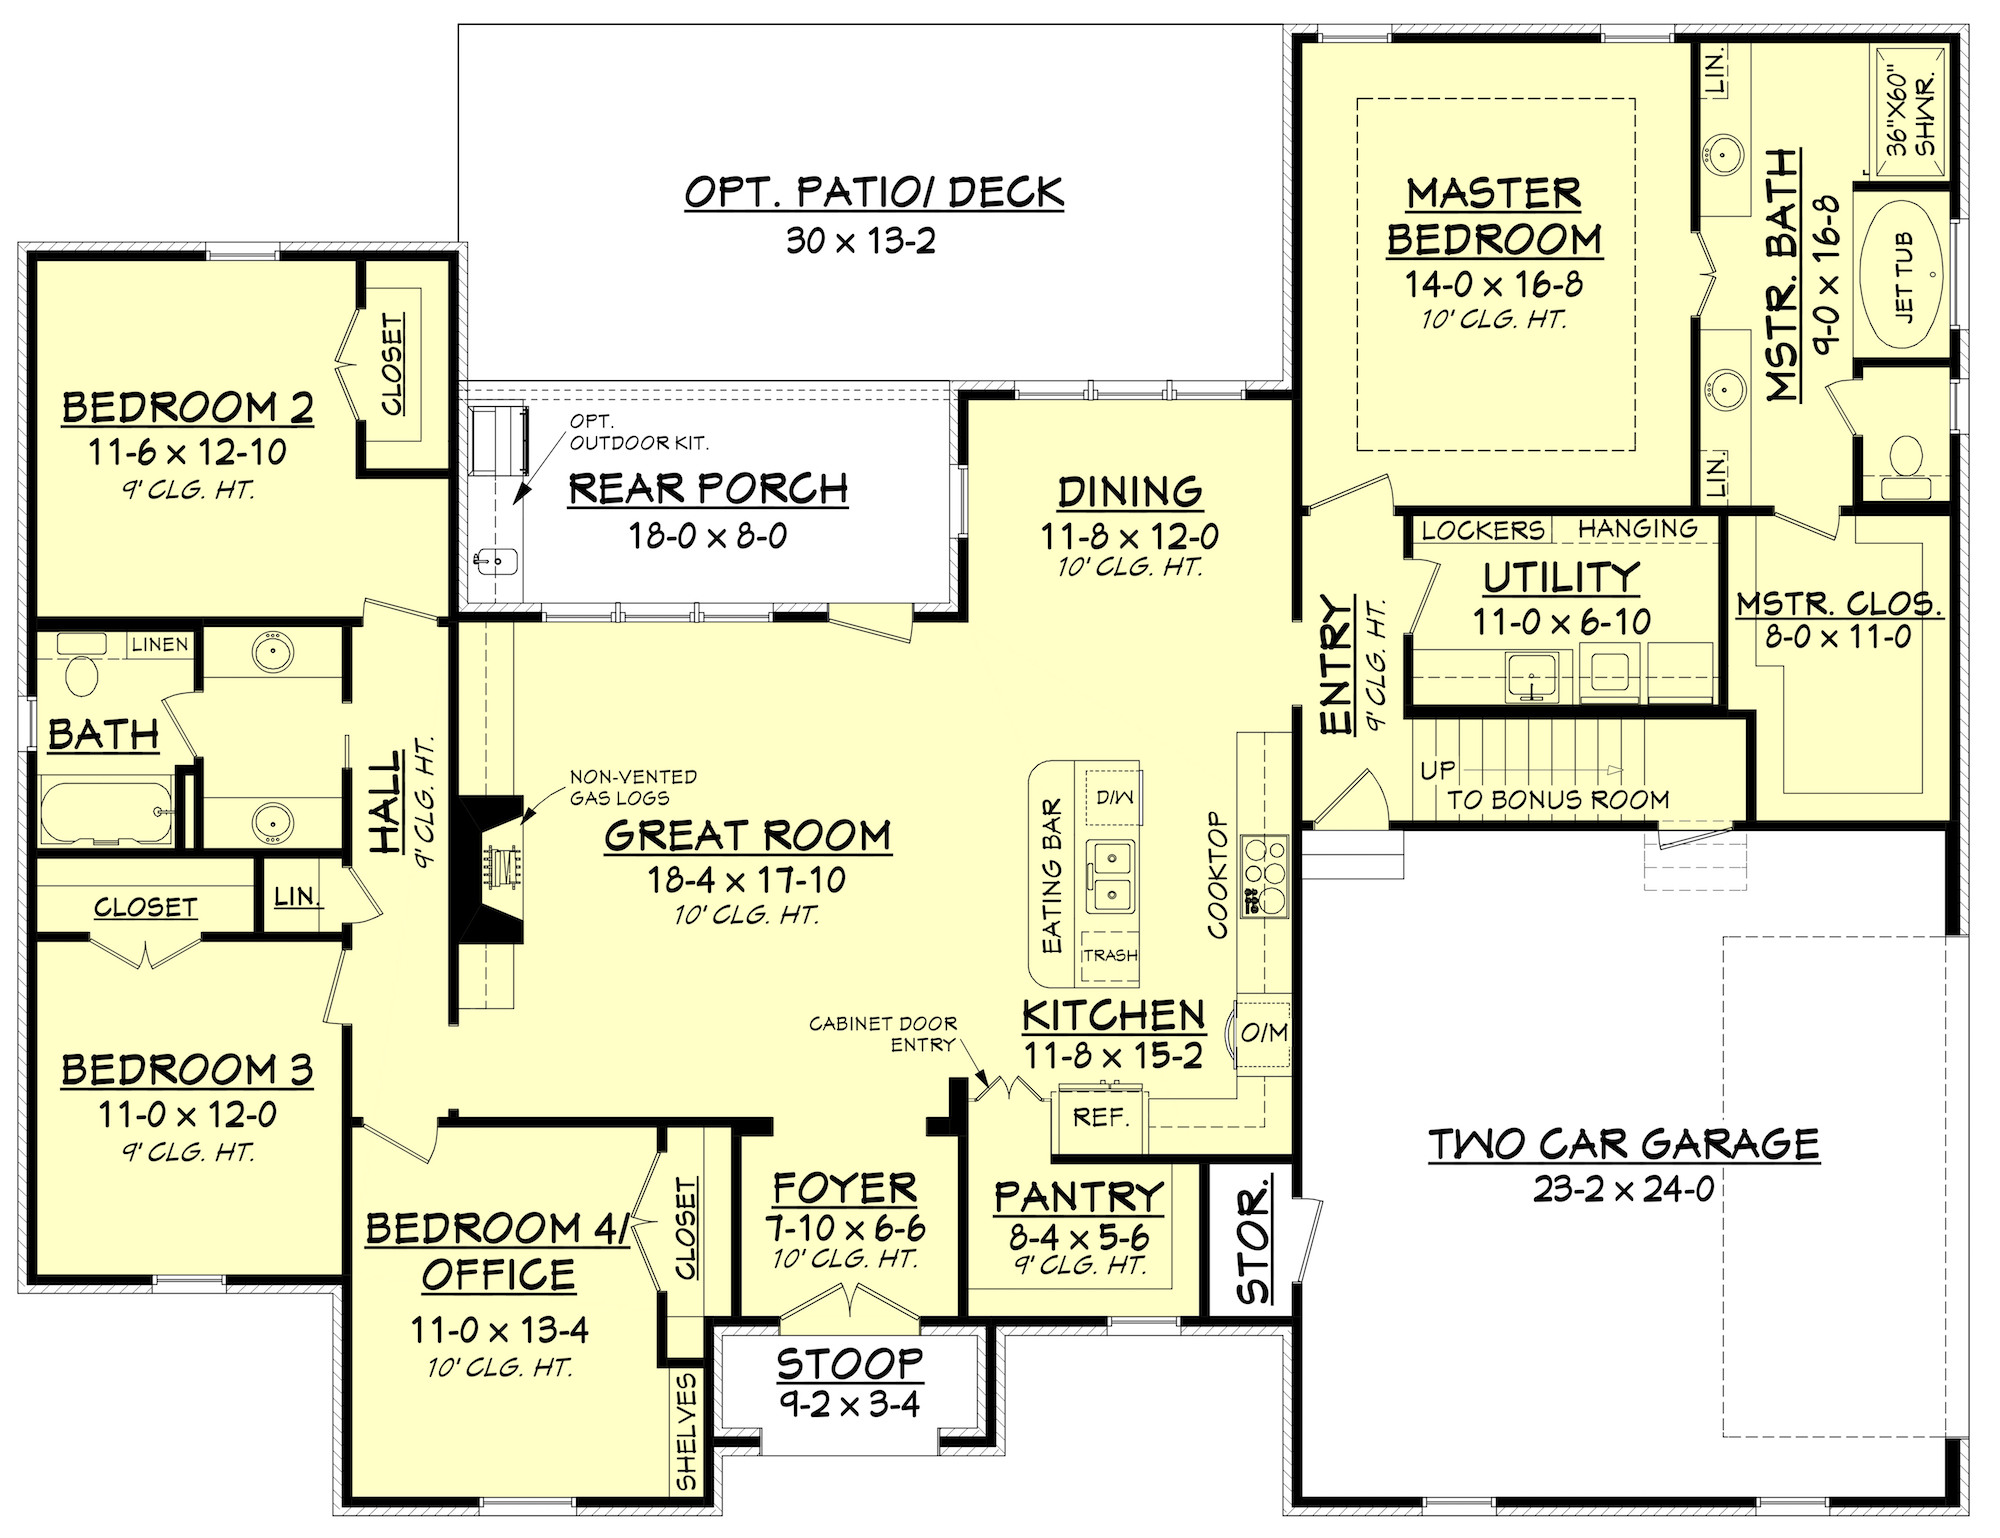 Acadian house plan 142 1154 4 bedrm 2210 sq ft home plan for Housr plans